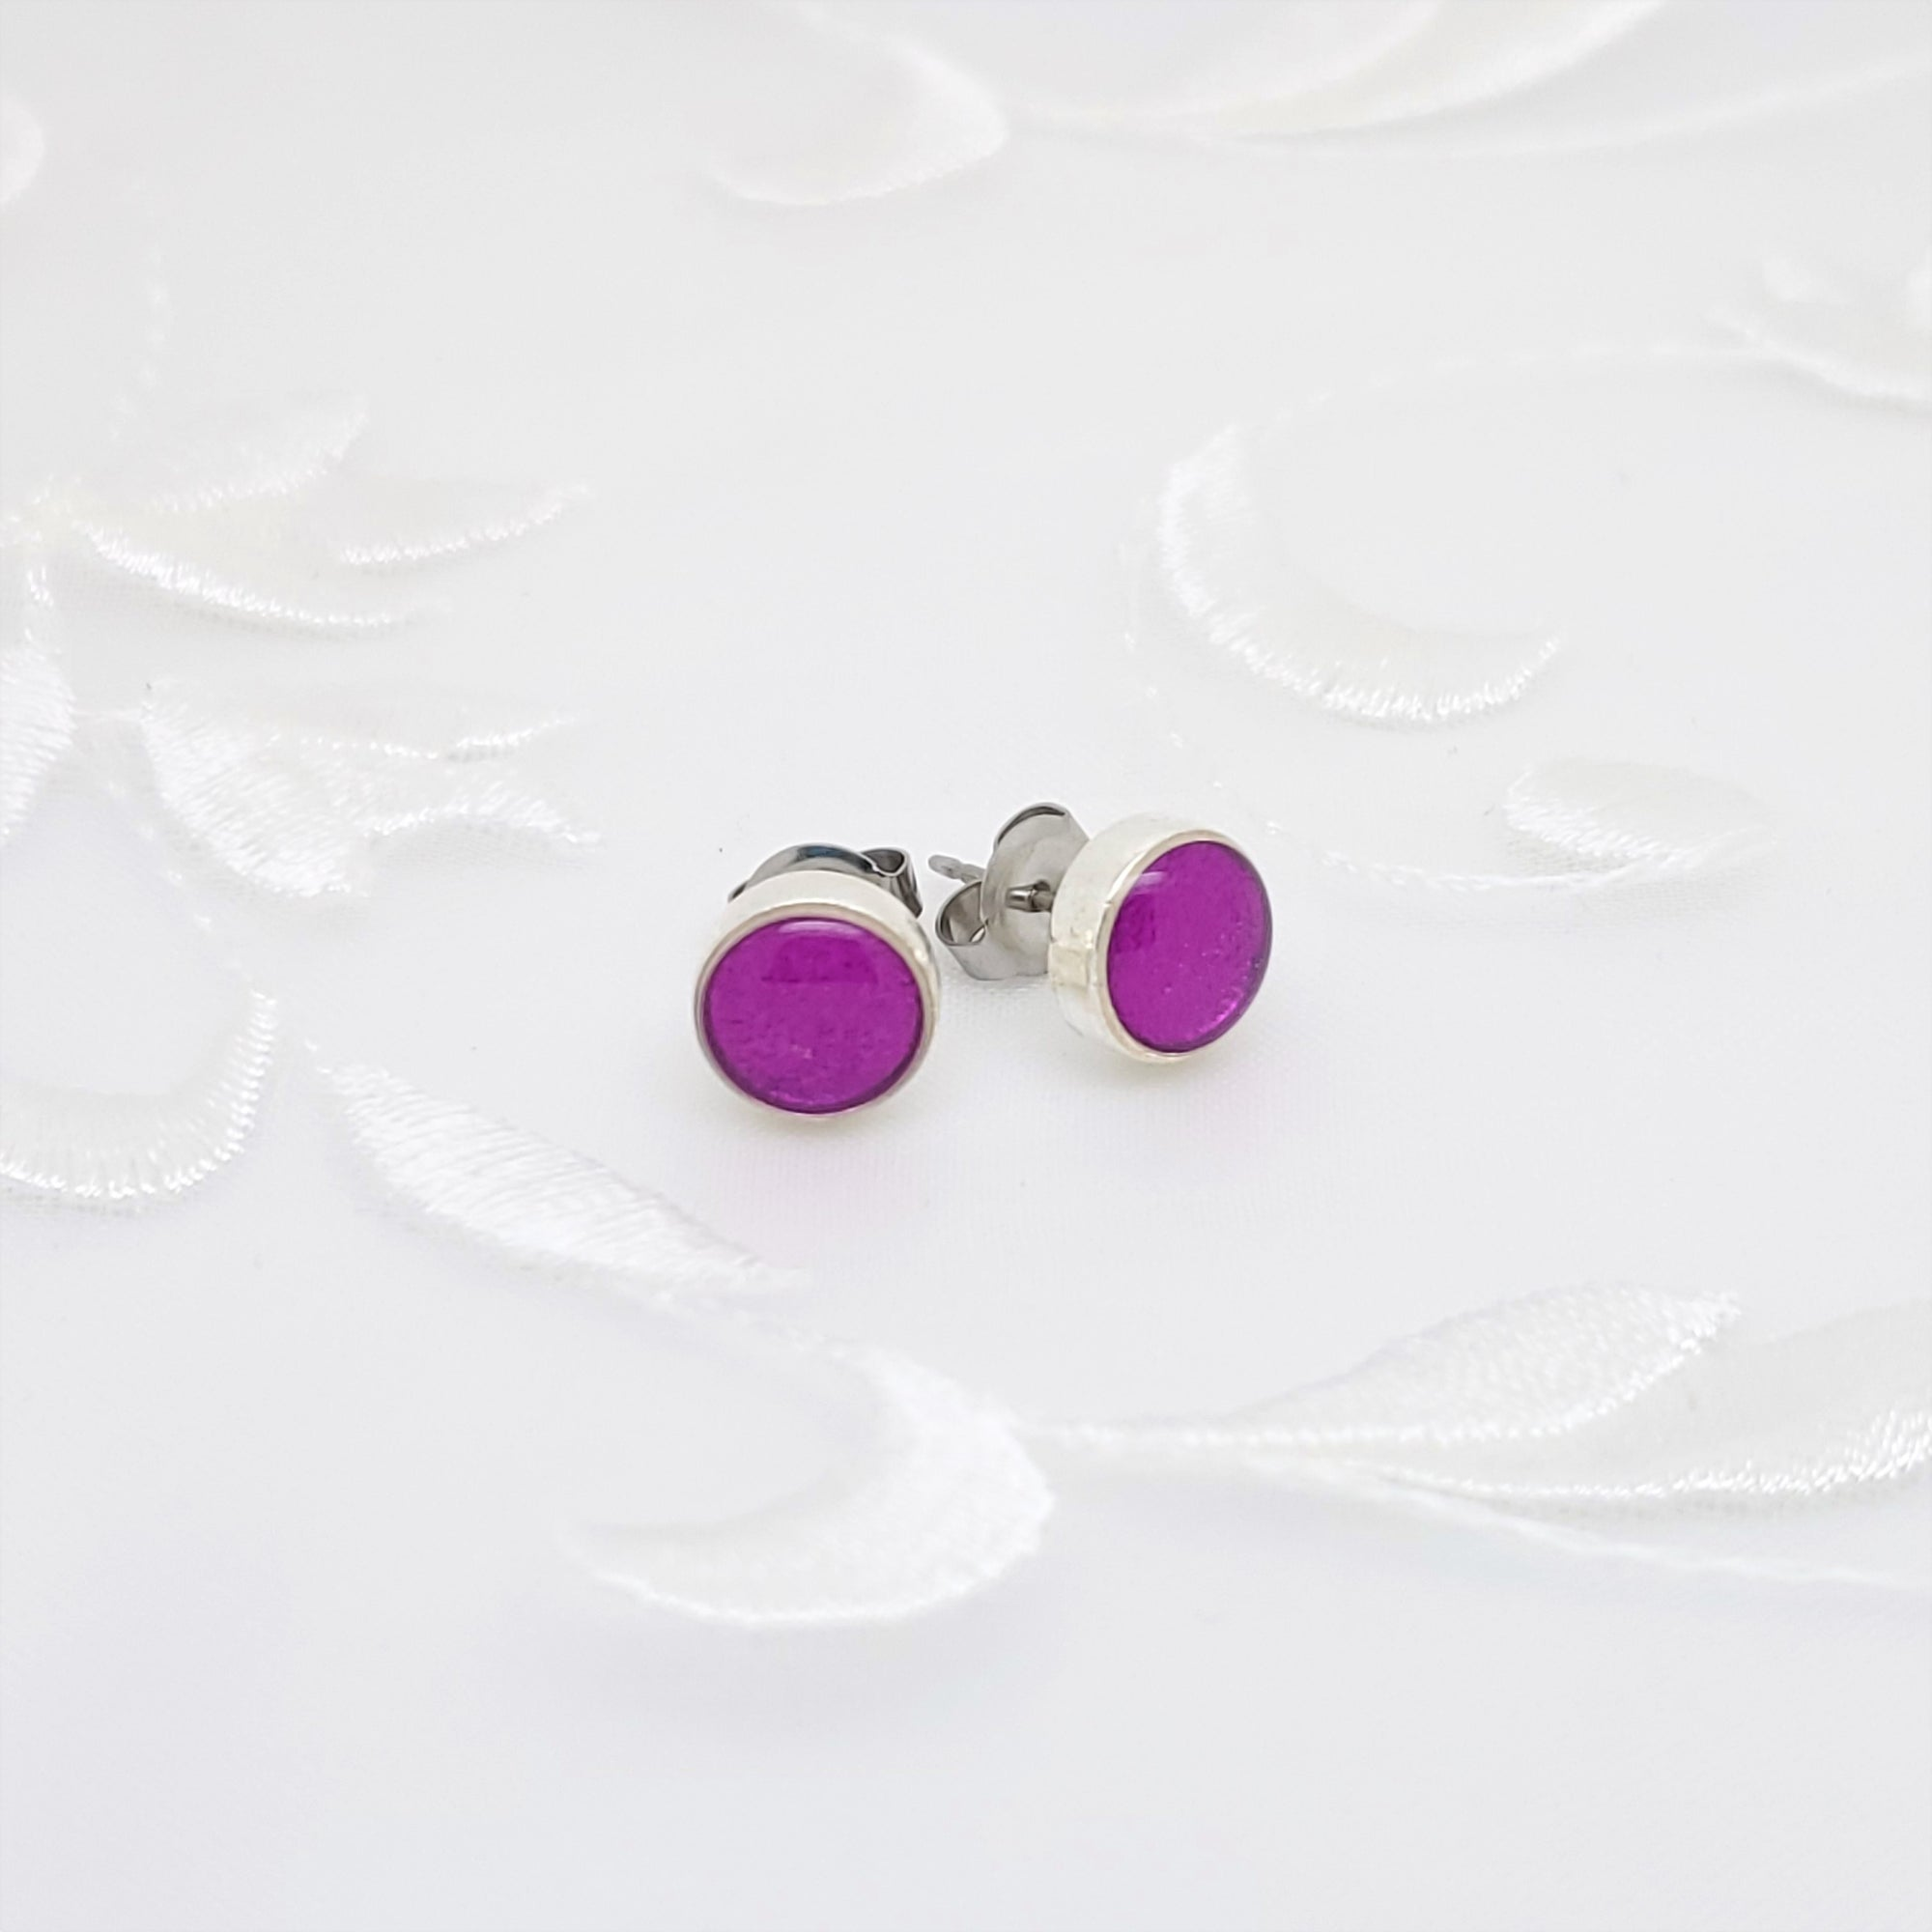 Antique Silver Round Stud Earrings with Transparent Fuchsia Resin